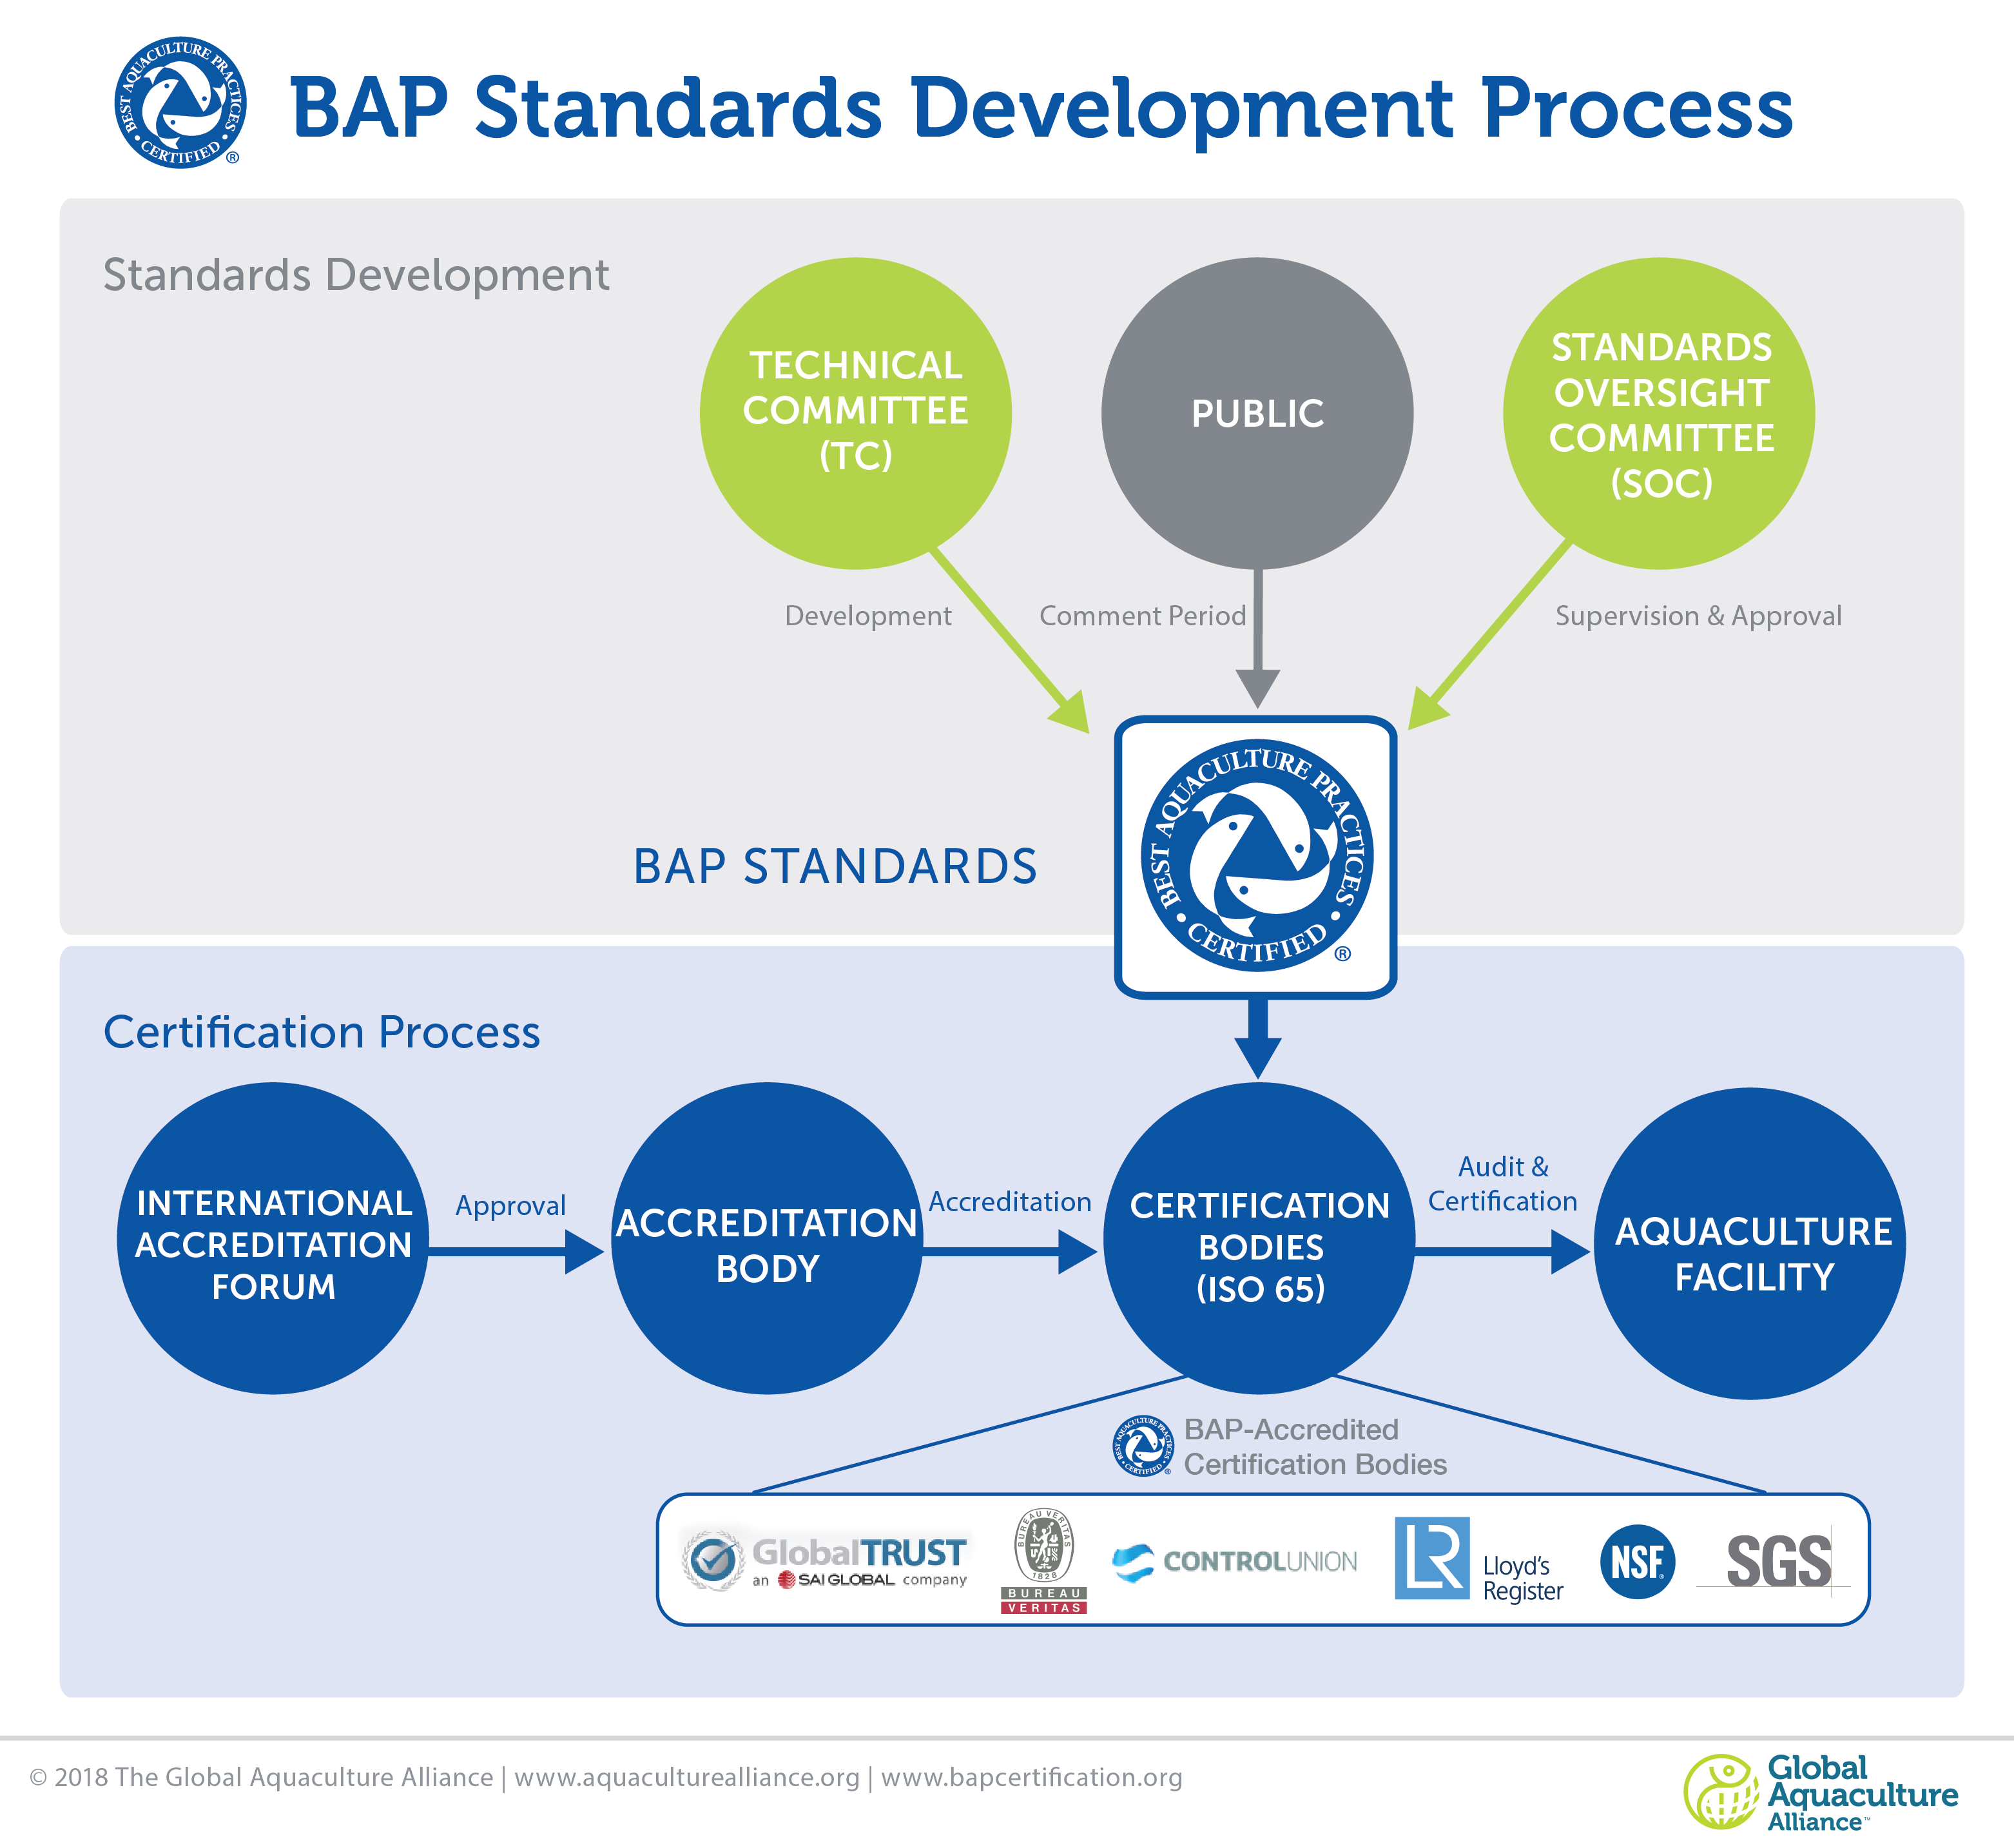 BAP Standards Development Process